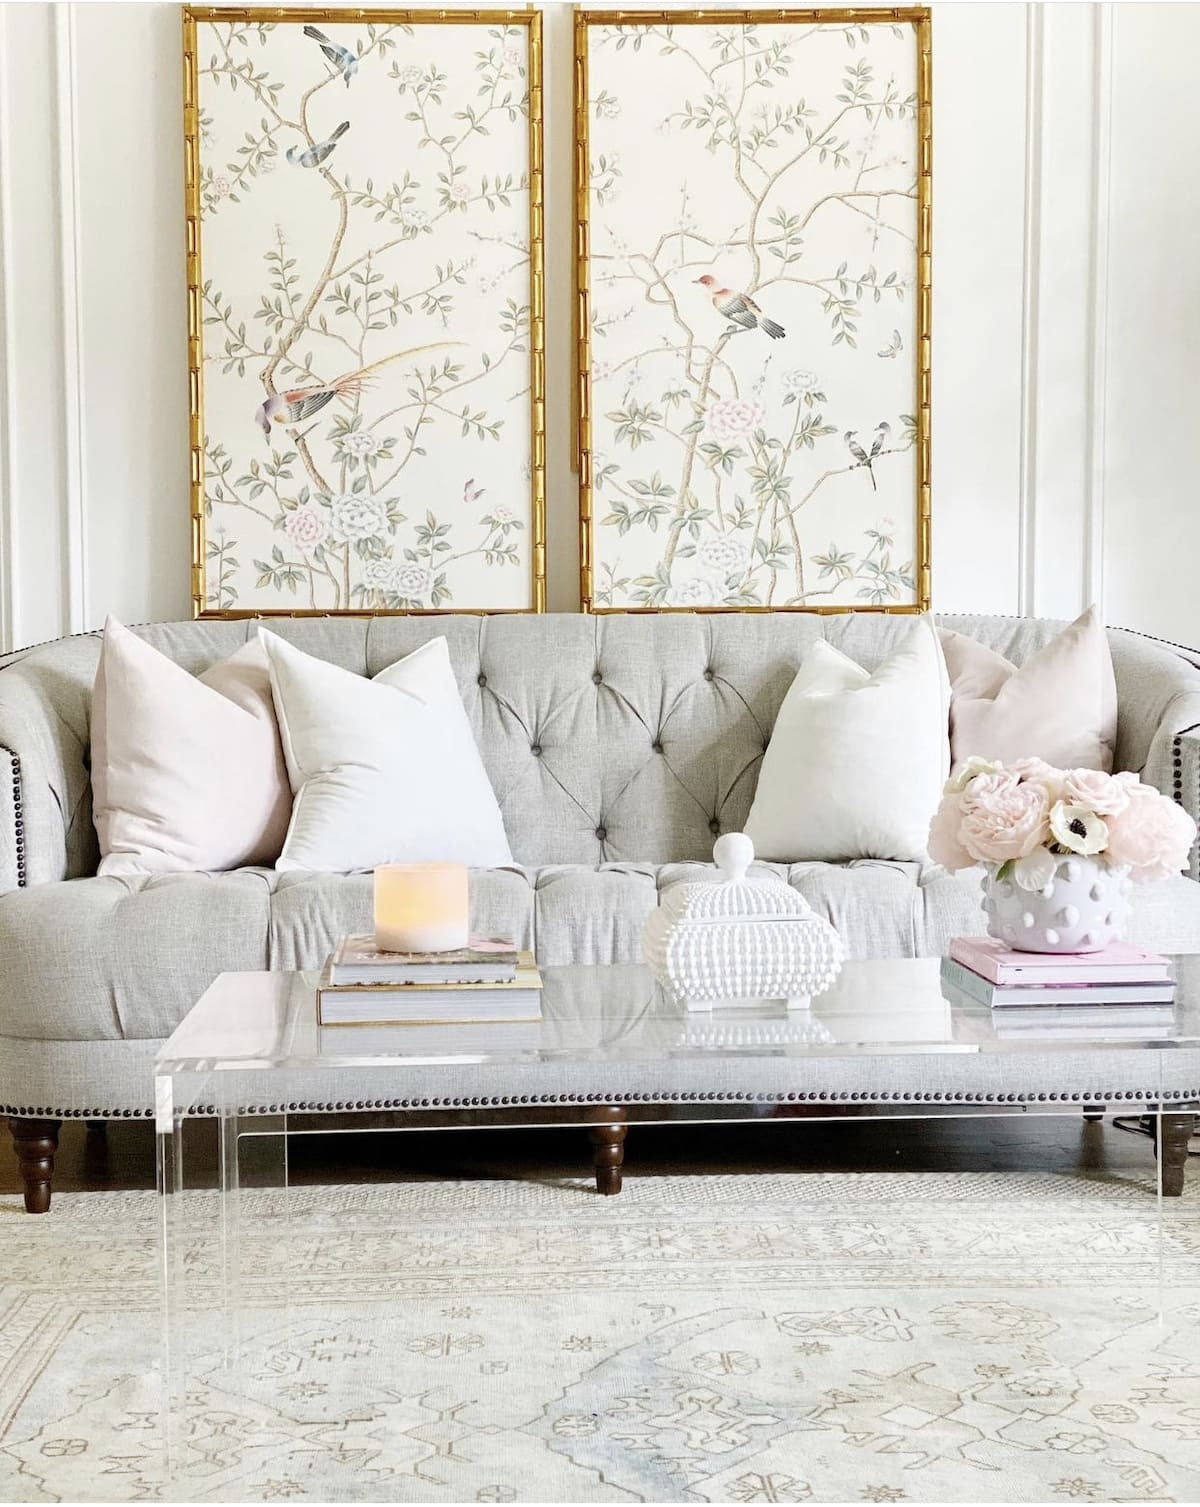 elegant transitional grandmillennial home with chinoiserie panels